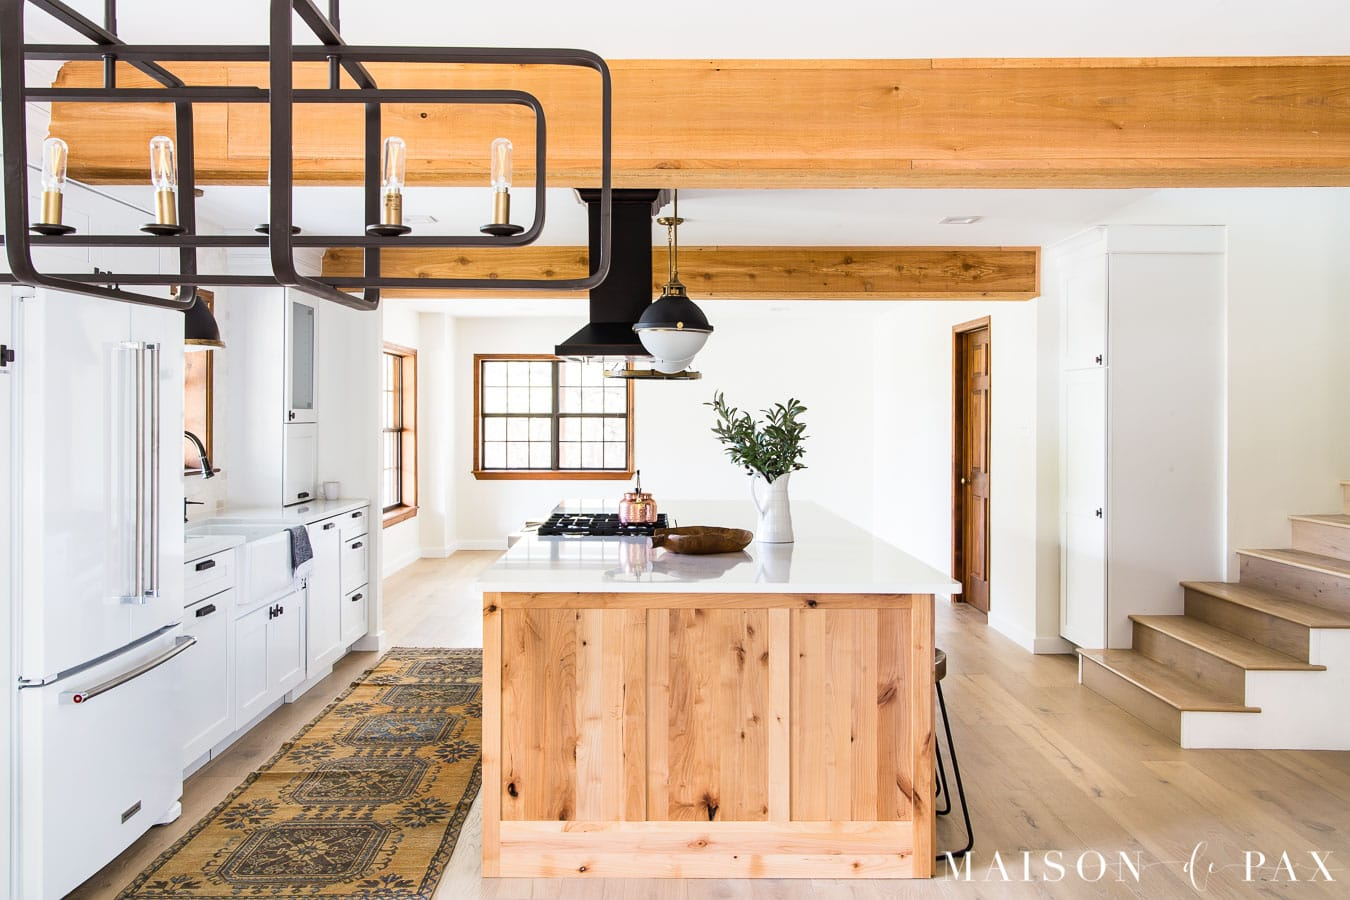 big rustic wood island in kitchen with beams | Maison de Pax